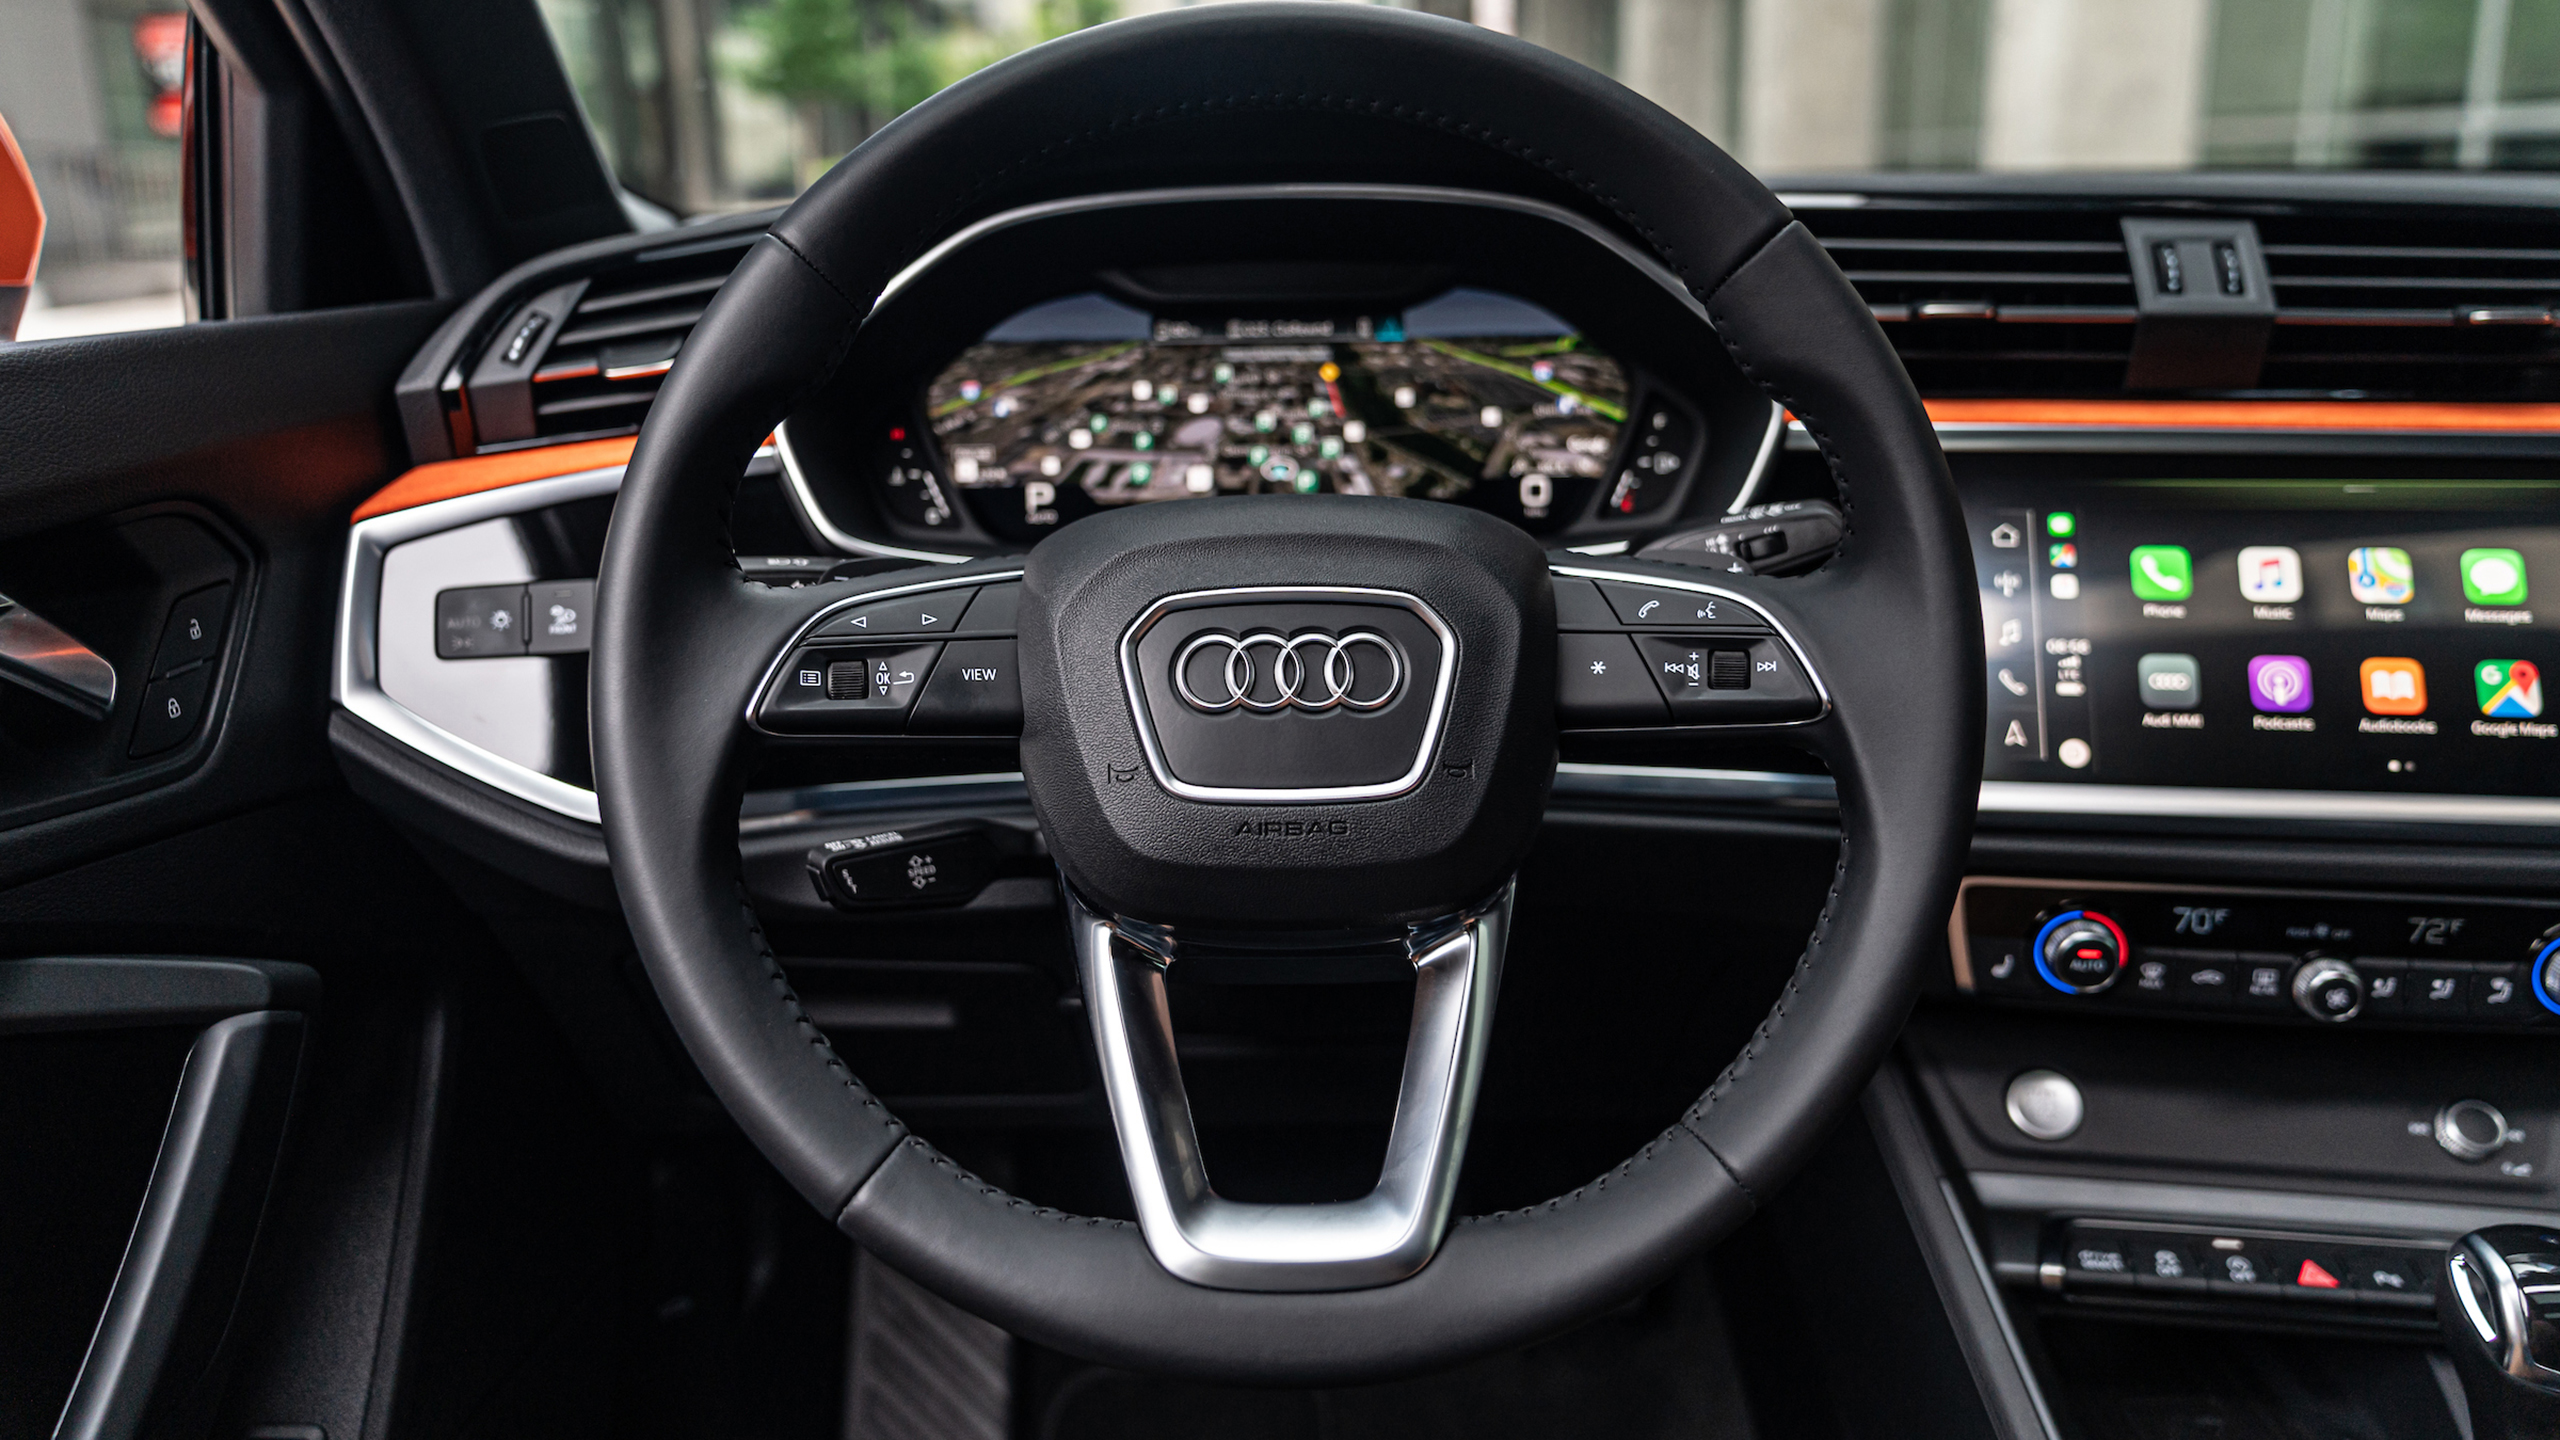 2019 Audi Q3 2 0 Tfsi Quattro S Line Interior Wallpaper Hd